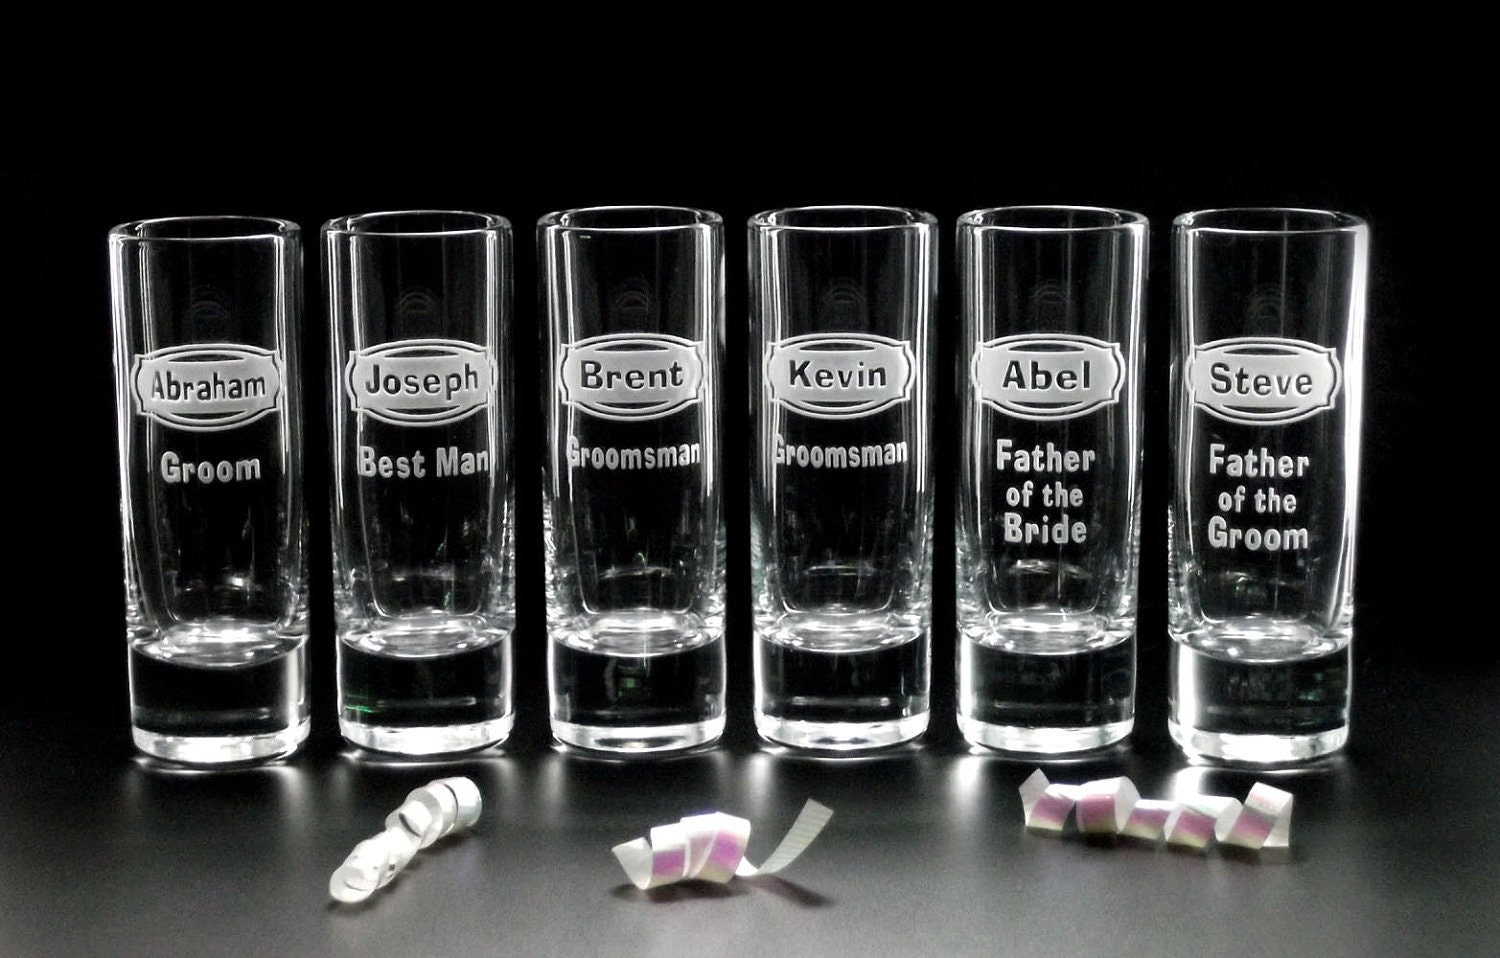 6 WEDDING Shot GLASSES - 'DESTINATION' Wedding Groomsmen Favors, Best Man Gifts, Father - Personalized Wedding Shot Glasses - Distinctglass